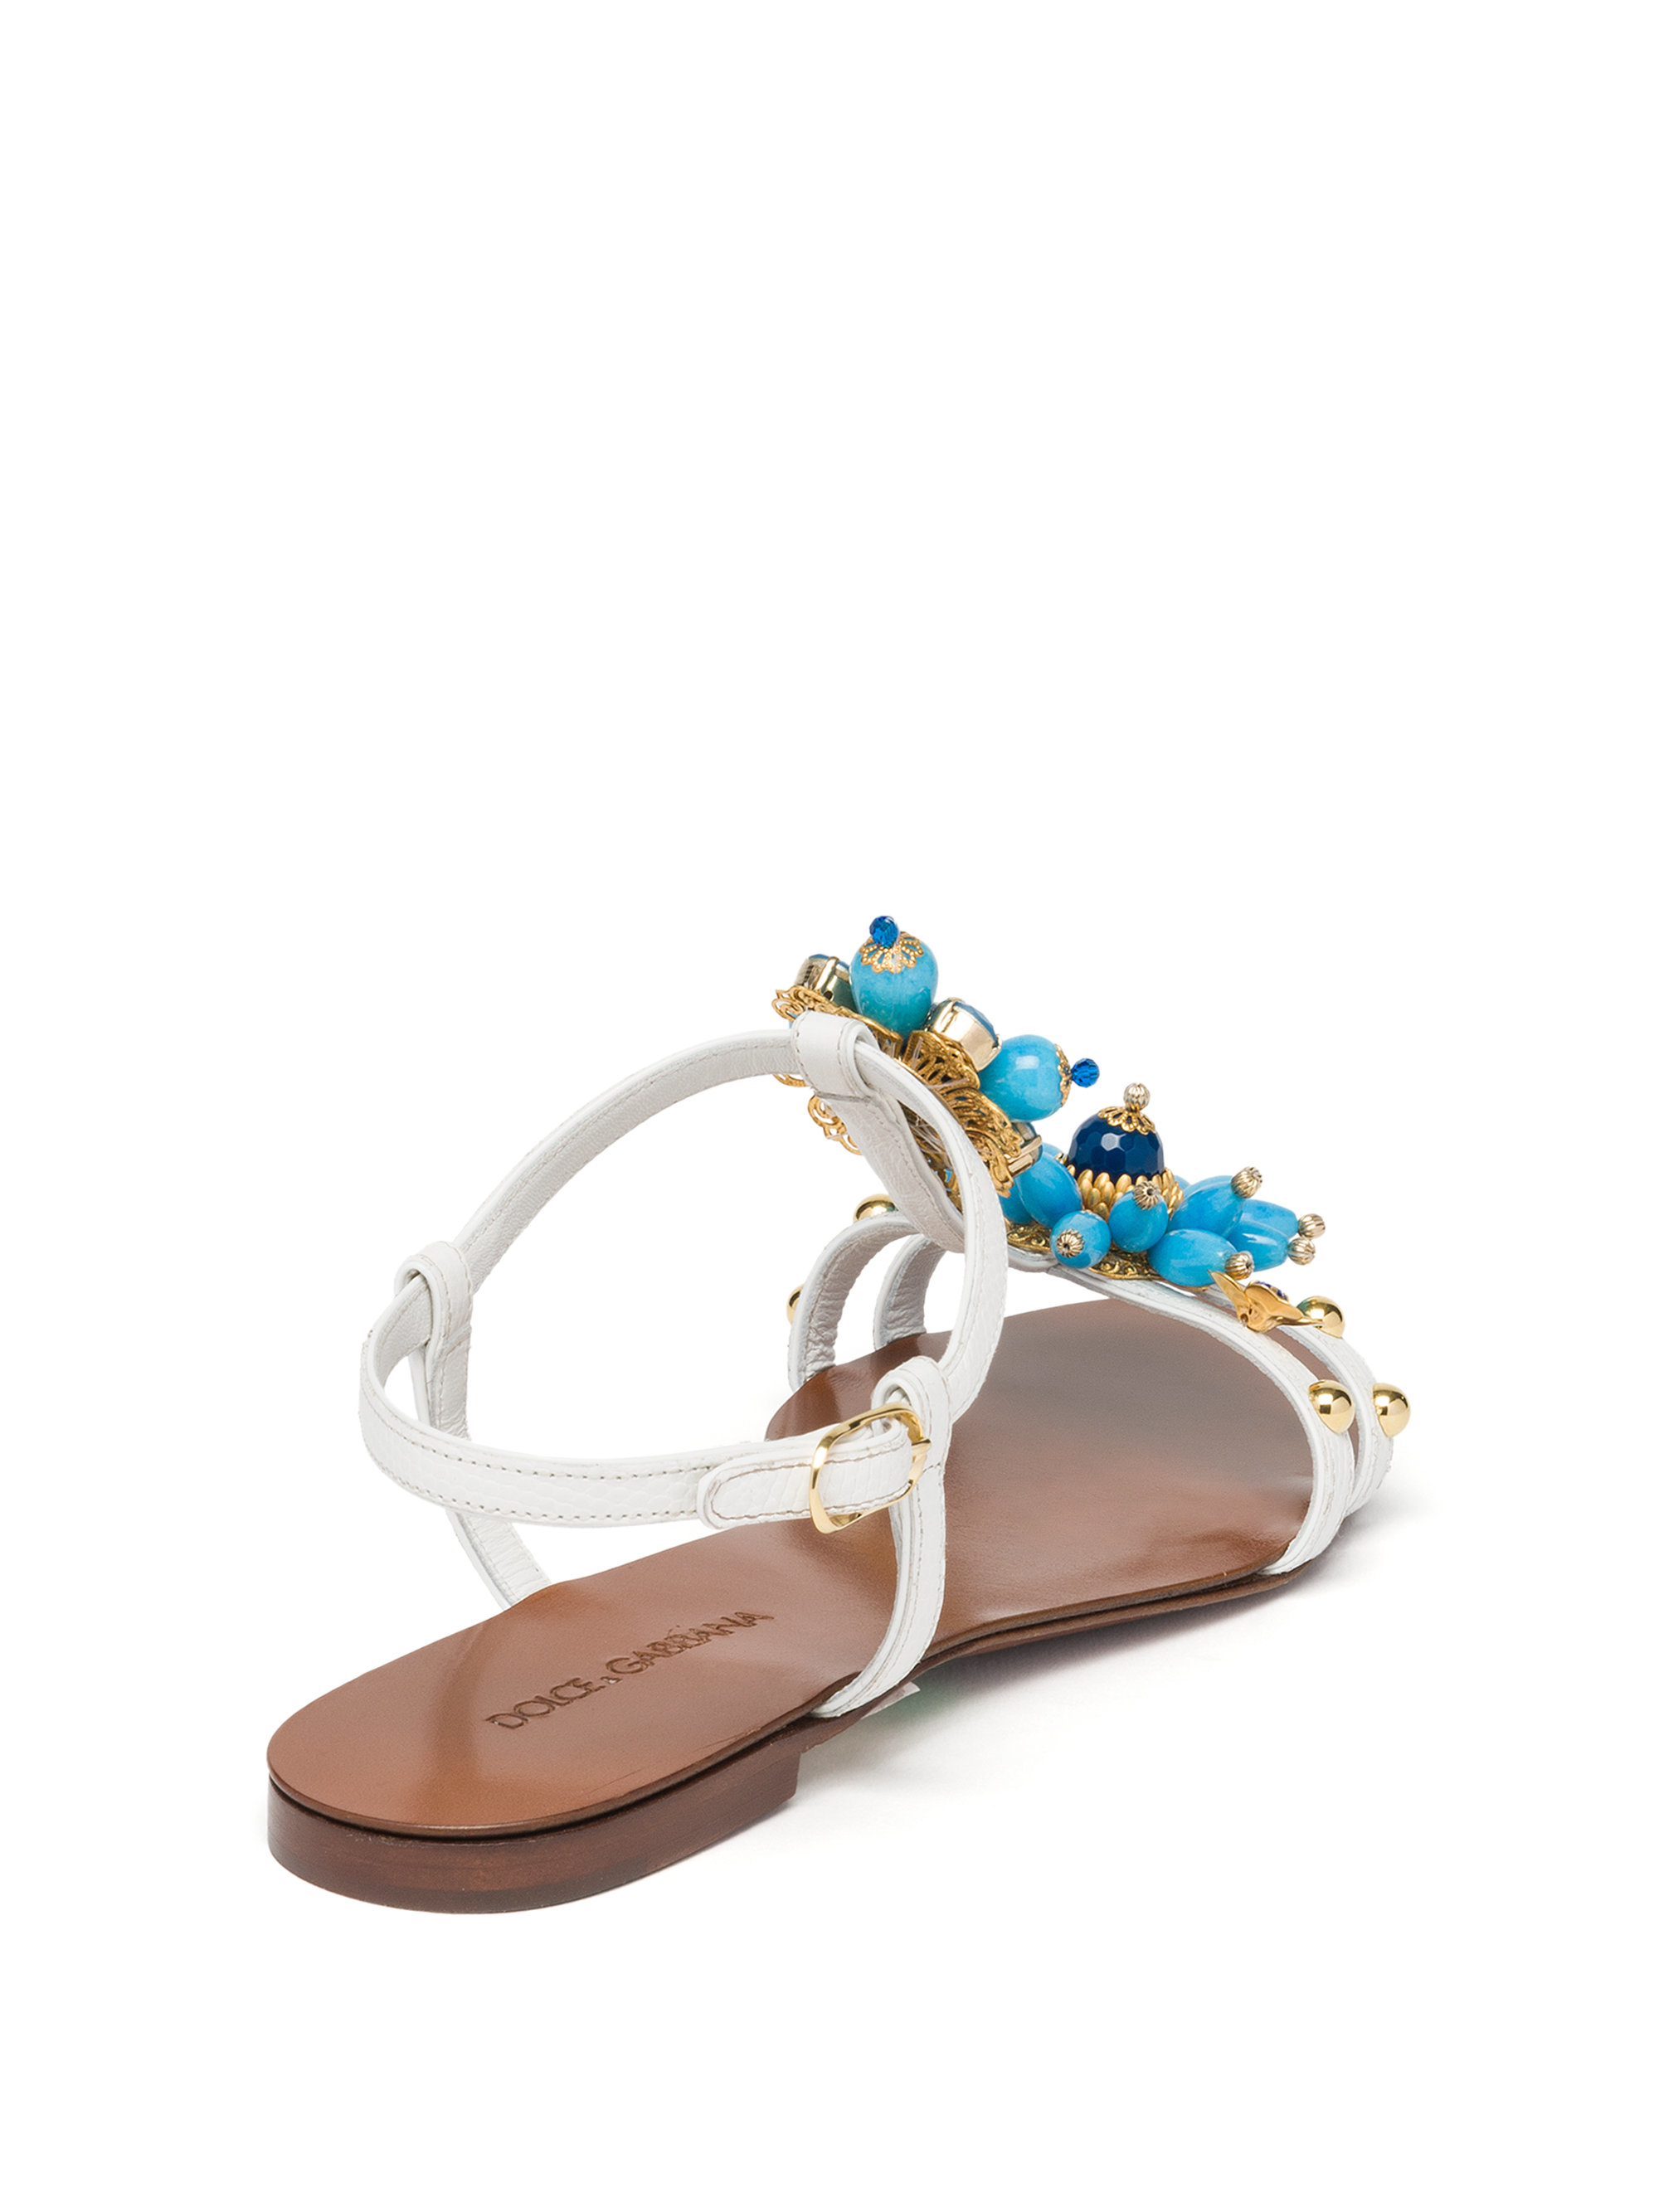 Dolce & Gabbana Leather Thong Sandals purchase sale online clearance cheap online clearance choice ZtLXX